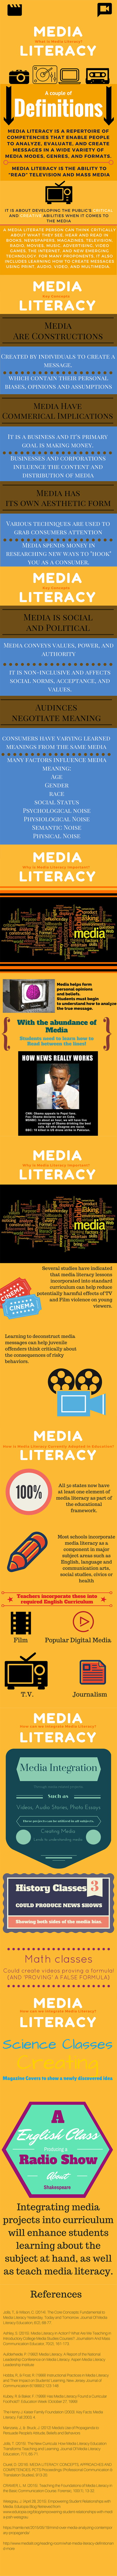 EdTech Media Literacy Infographic